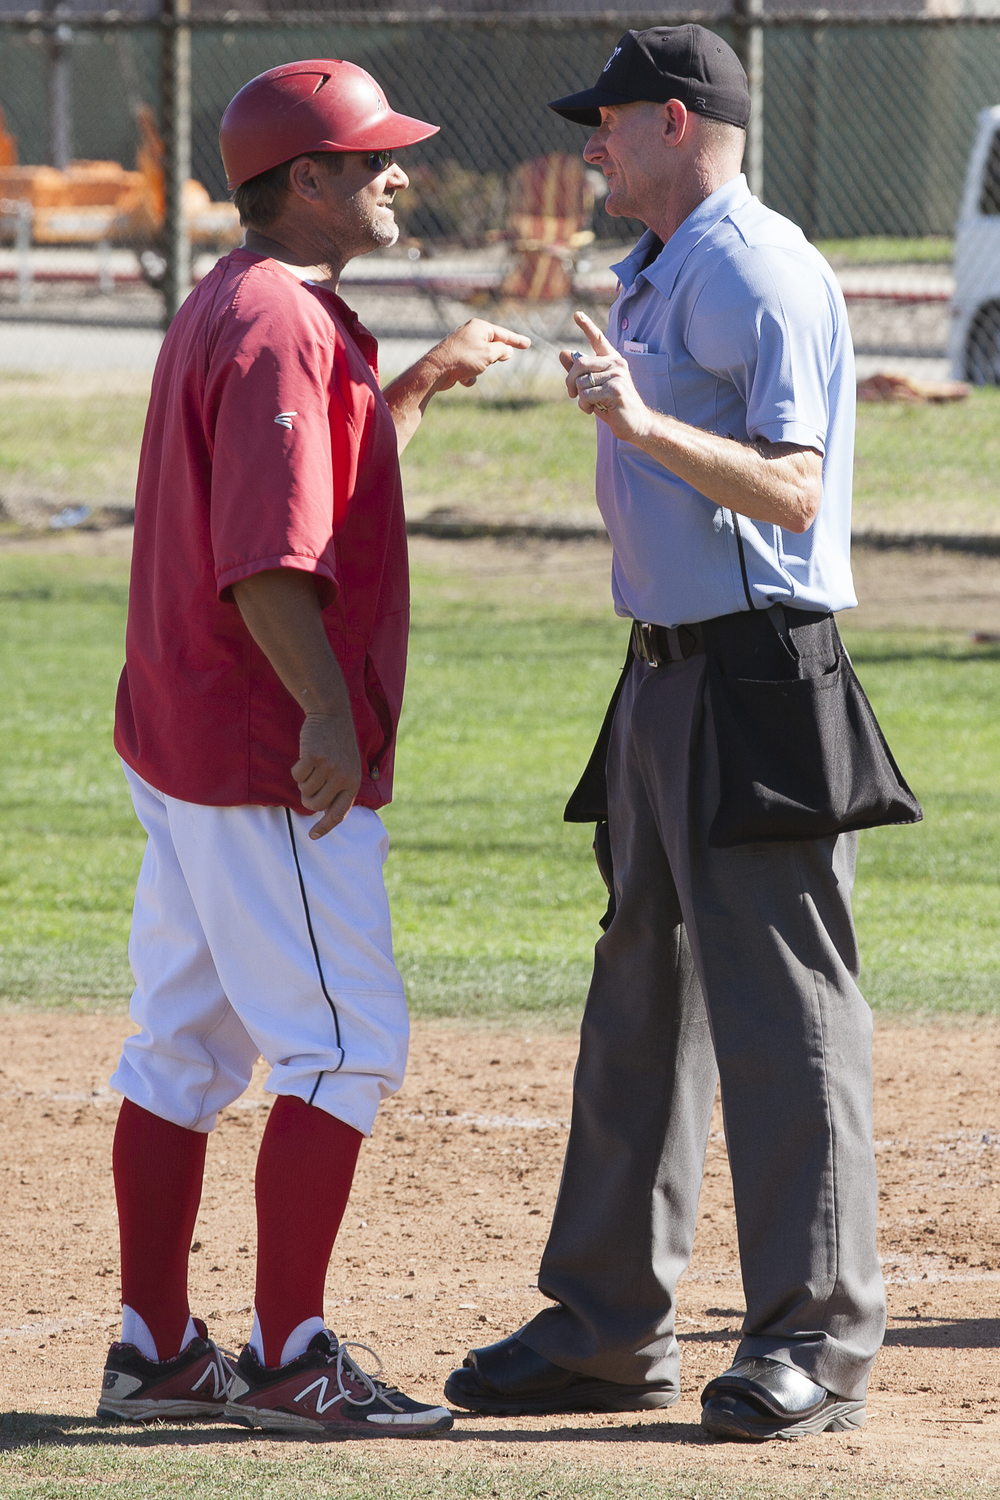 Coach Bill Picketts argues with the umpire over a non-hit batter call in the bottom of the second inning during a home game against Glendale College in Woodland Hills, Calif., on Saturday, Feb. 13, 2016.